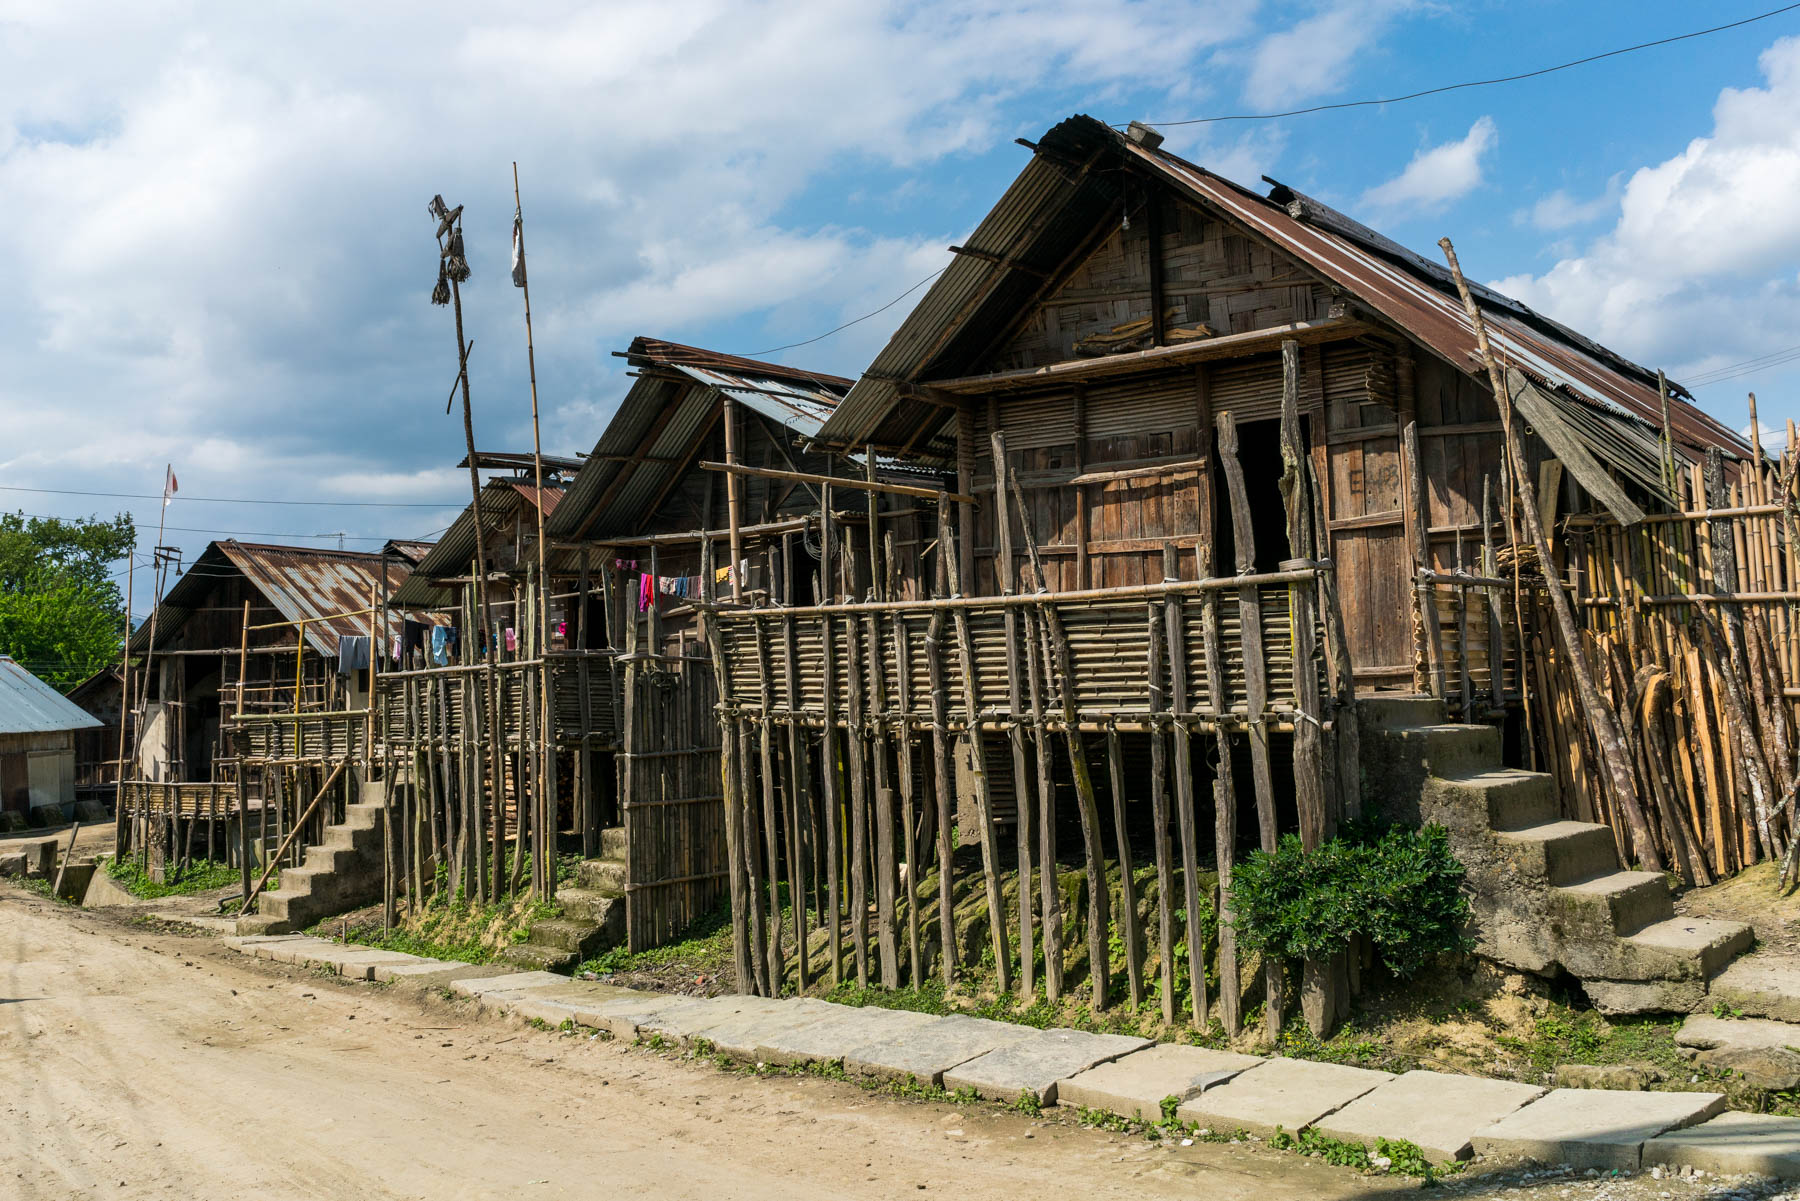 Backpacking in Arunachal Pradesh travel guide - Tribal houses in Ziro Valley - Lost With Purpose